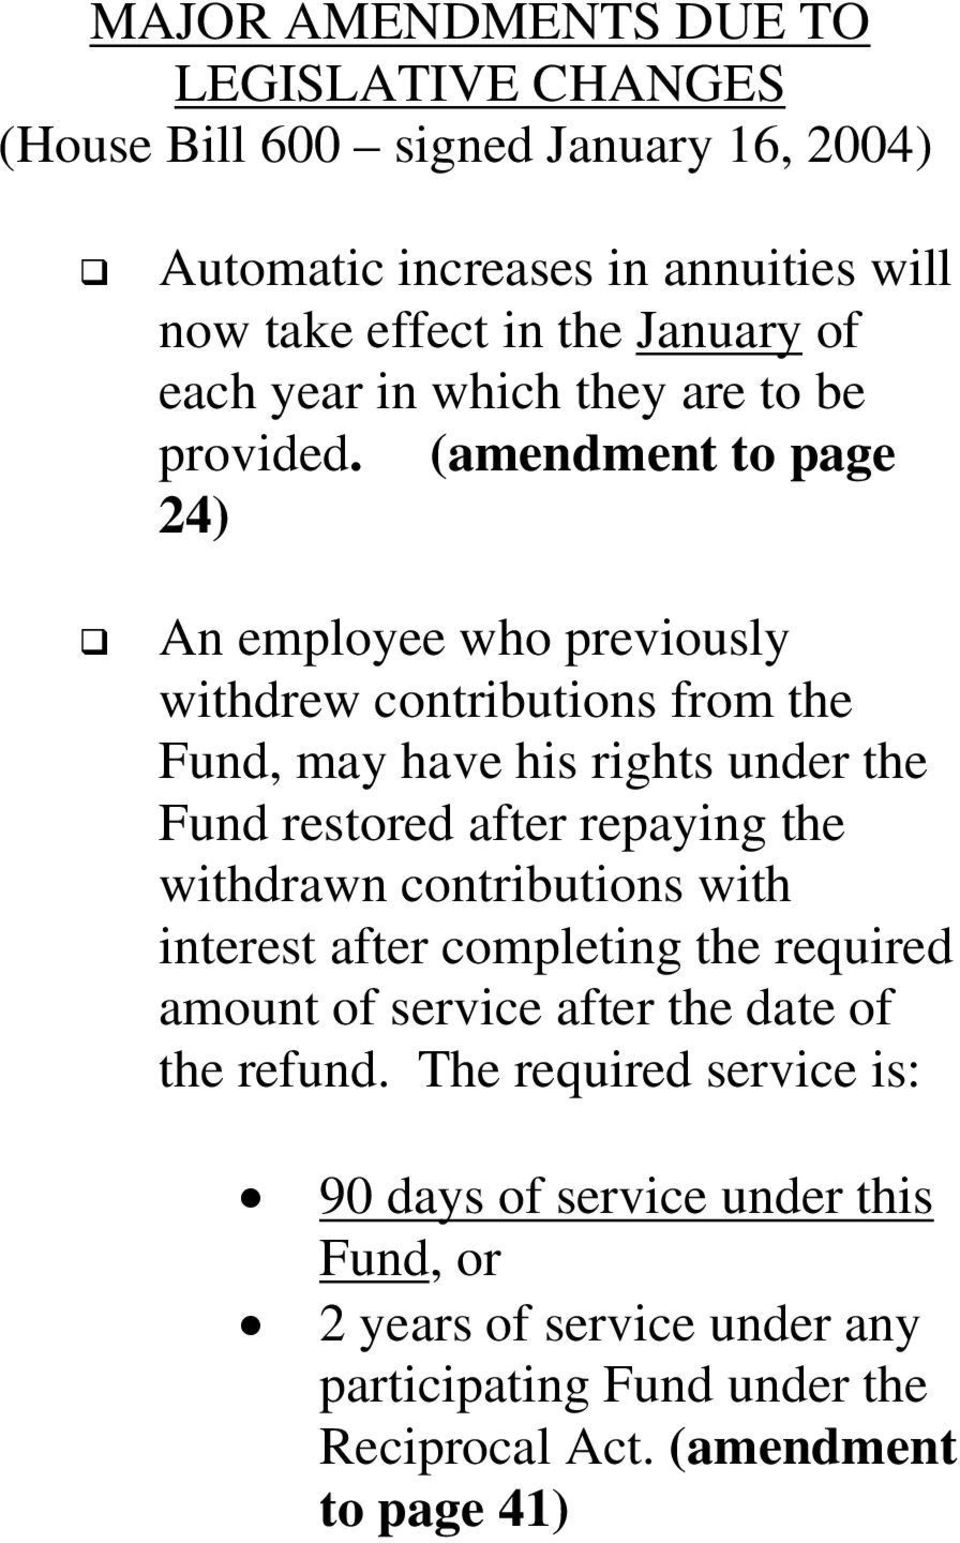 (amendment to page 24) An employee who previously withdrew contributions from the Fund, may have his rights under the Fund restored after repaying the